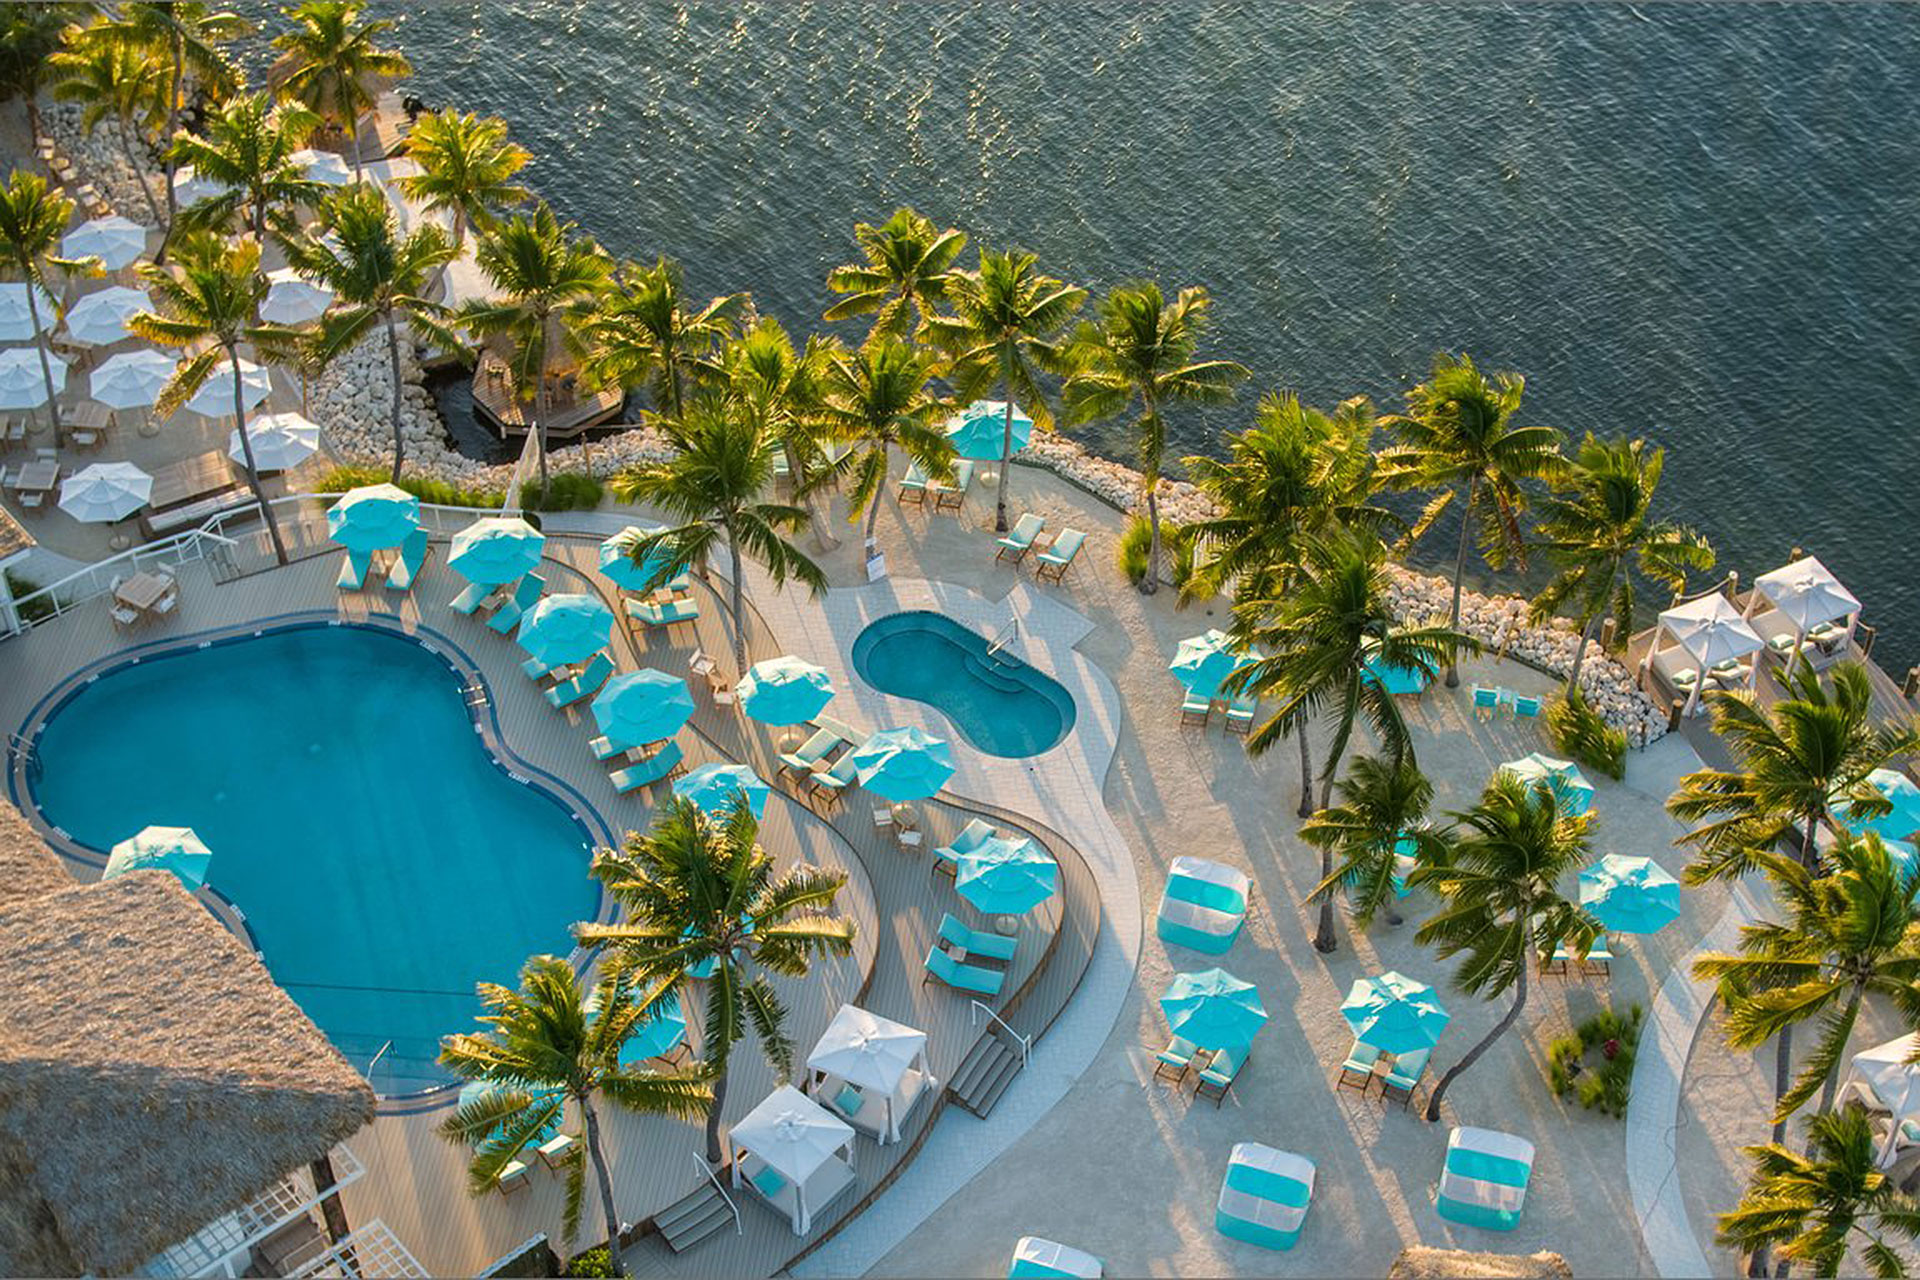 Aerial View of Bungalows Key Largo; Courtesy of Bungalows Key Largo